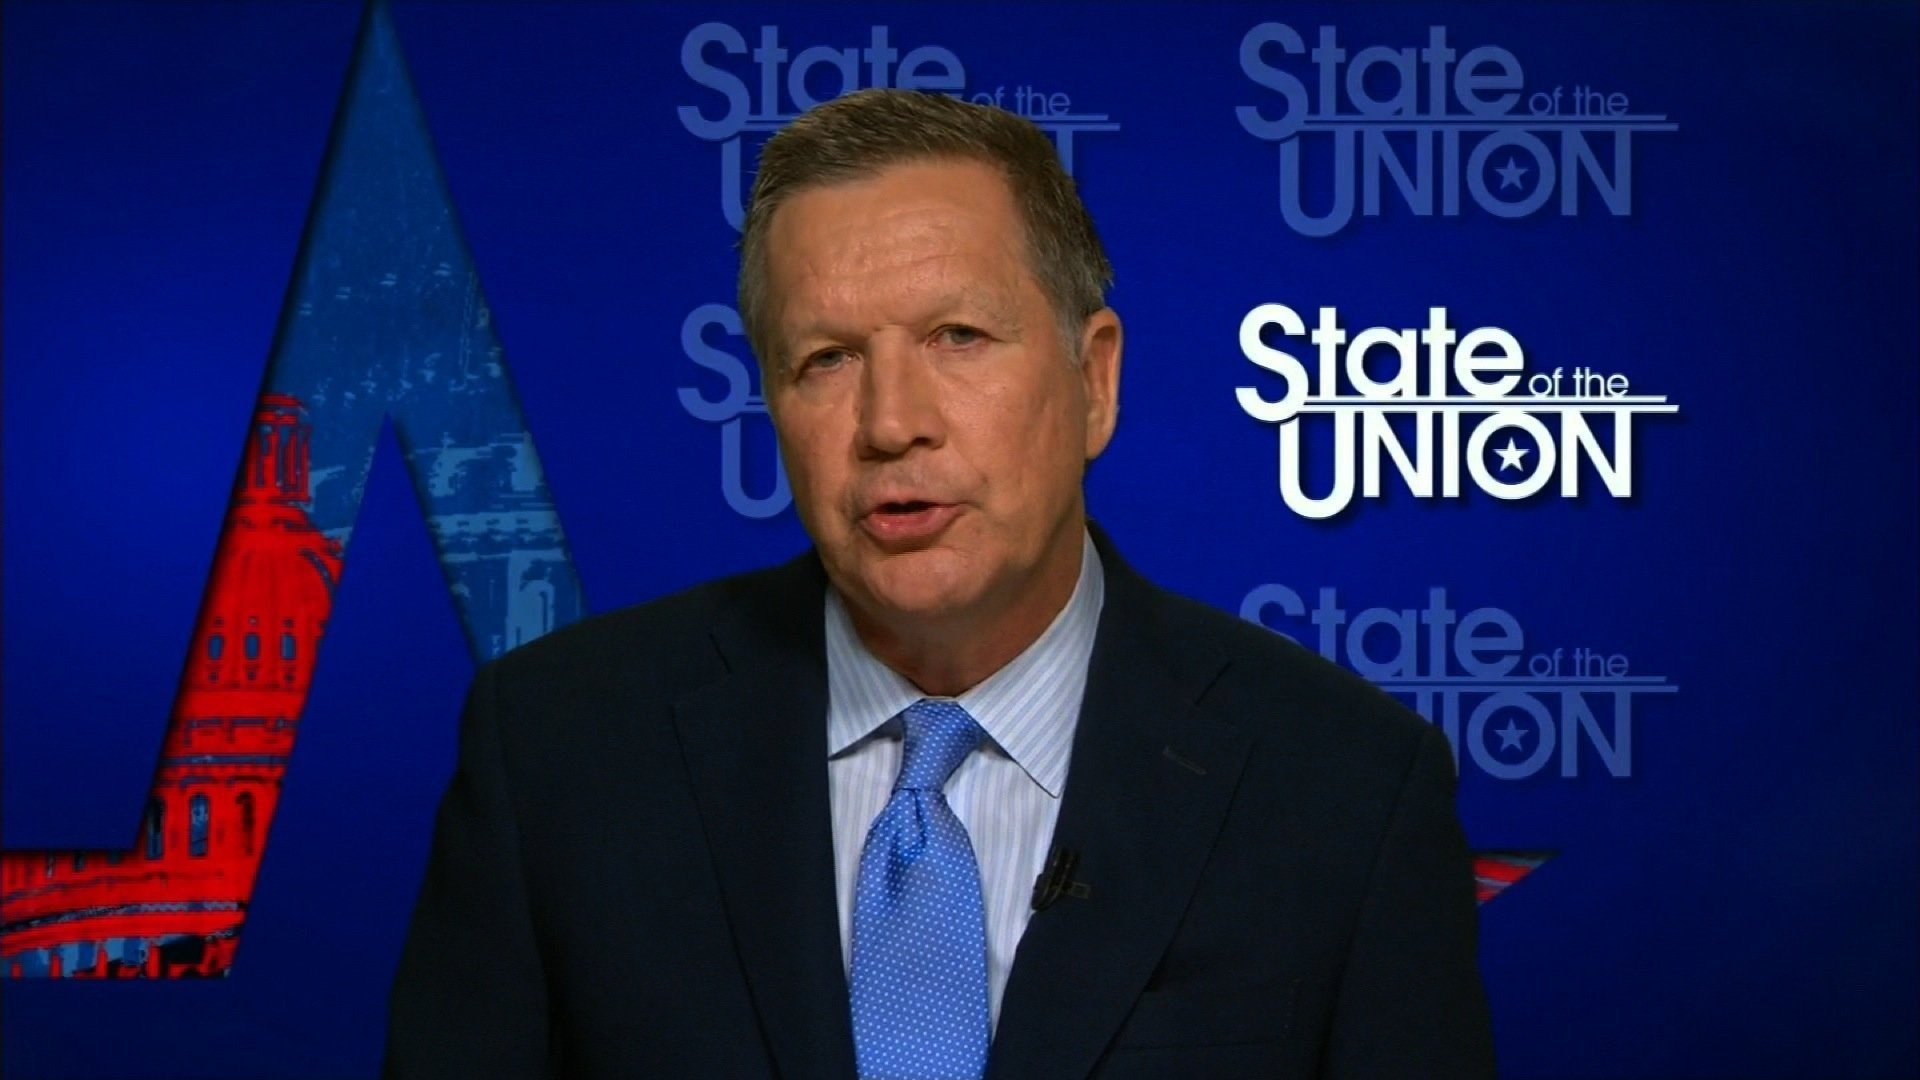 GOP's John Kasich featured guest at live town hall on CNN